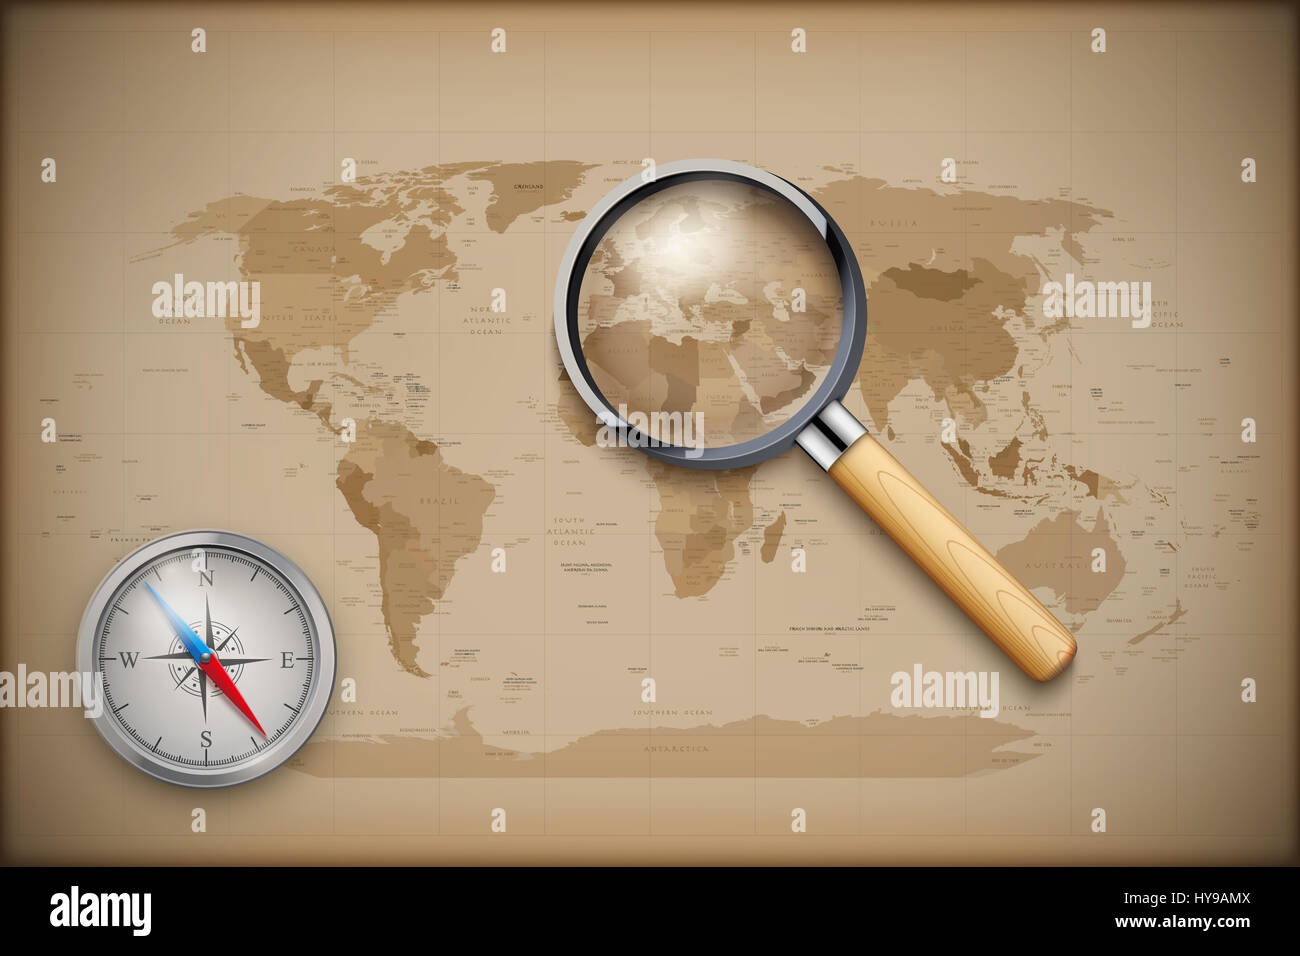 Vintage World Map with magnify and compass Stock Photo: 137274282